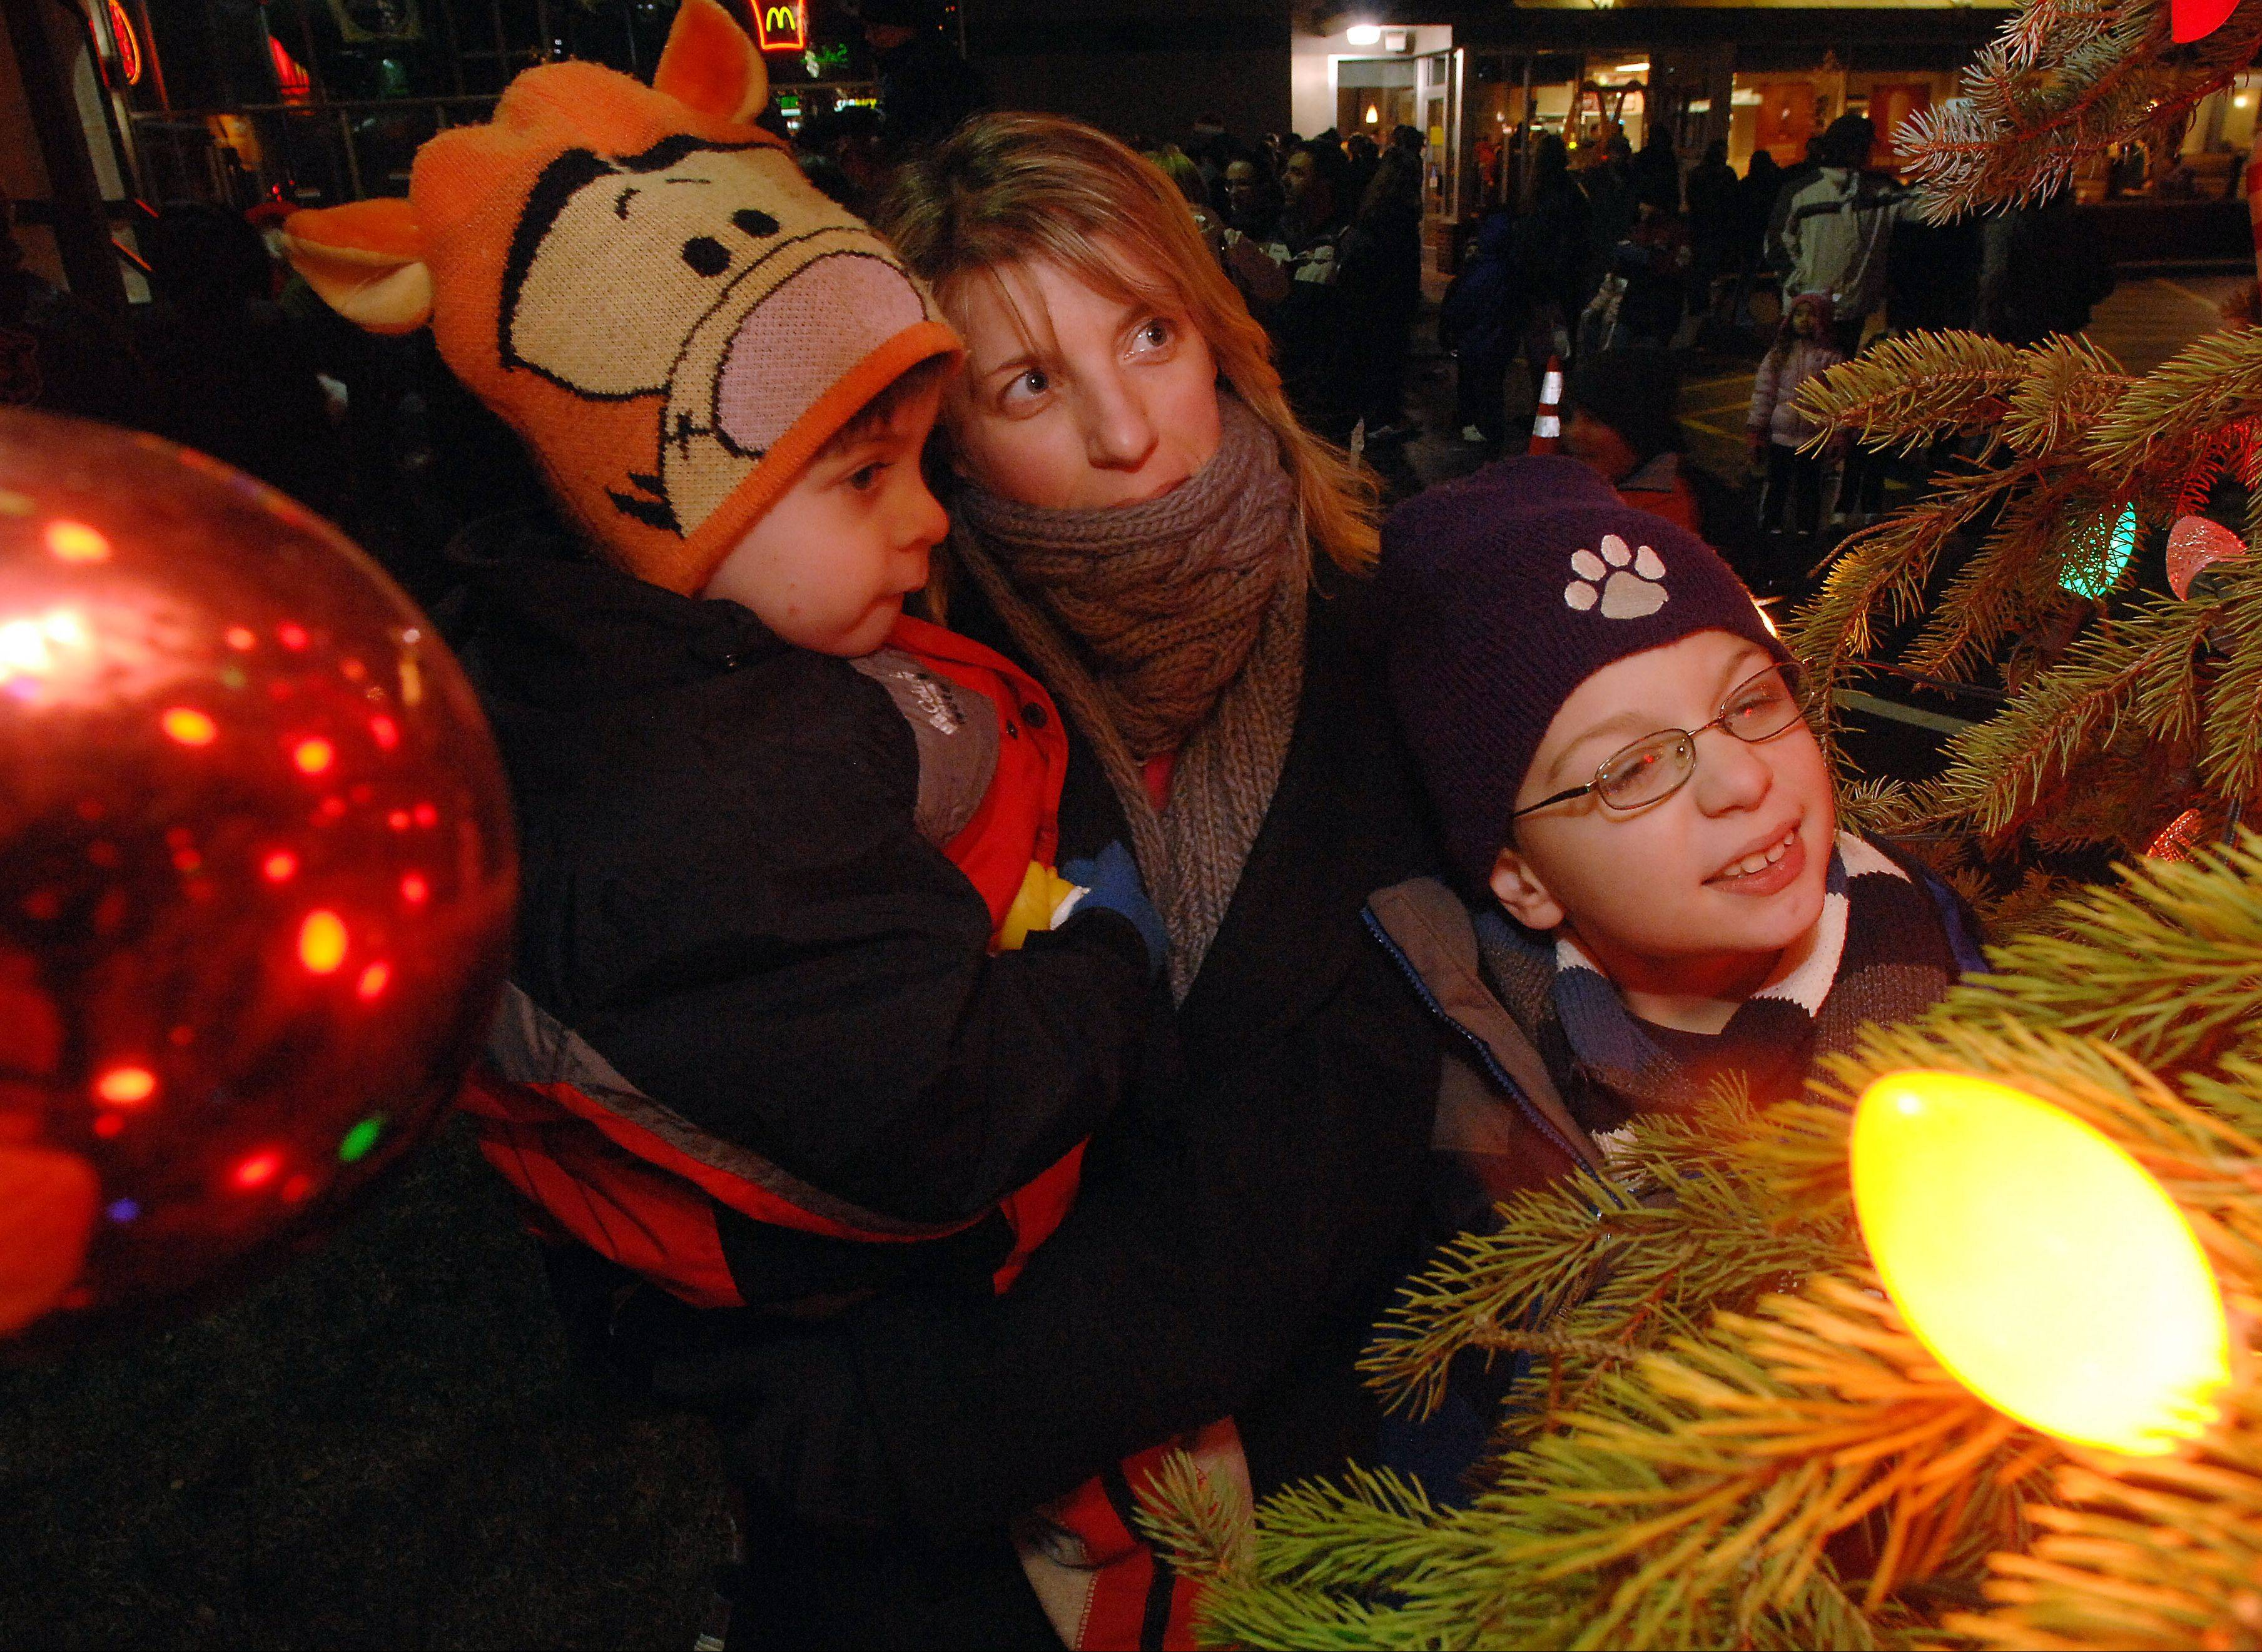 Rolling Meadows resident Joann Grasse spends the holiday with her sons Kyle, 3, and Nicholas, 8, soaking in the colors of the lights at the Rolling Meadows Christmas tree lighting festival. Move the subjects closer to the lights to get a warm glow on the family for a beautiful image.